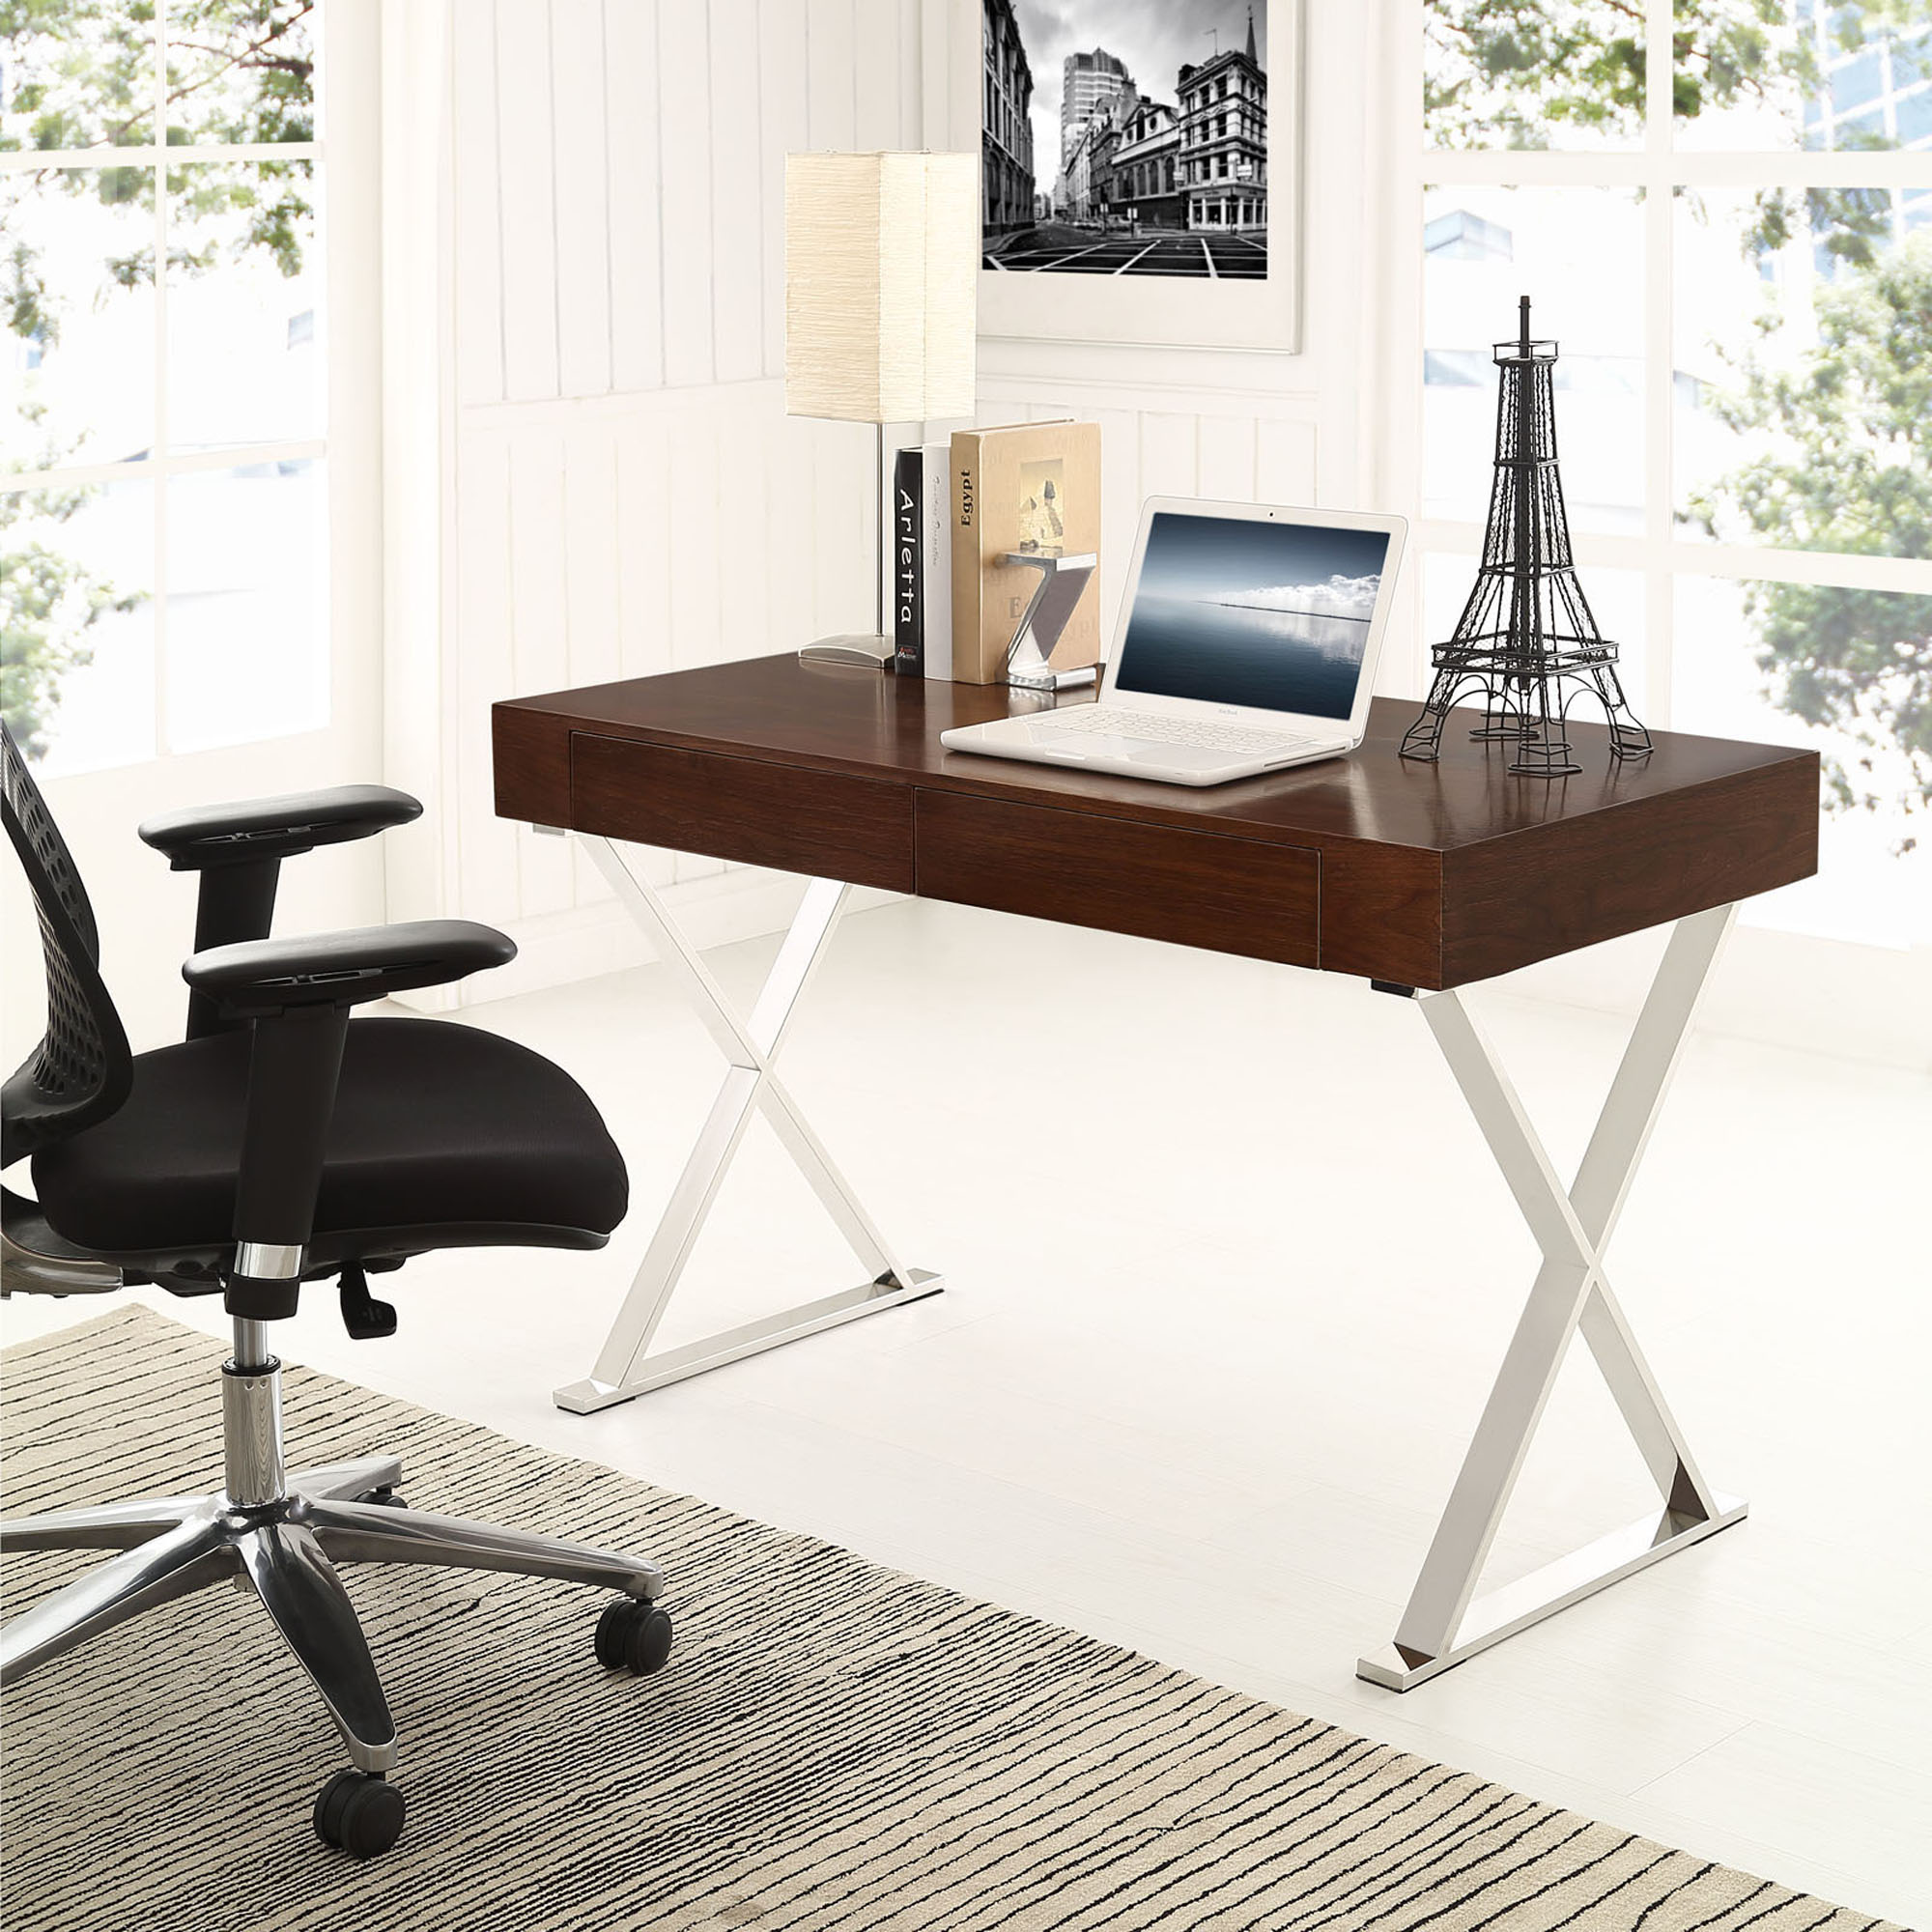 Modway Sector Office Desk With Stainless Steel Frame, Multiple Colors    Walmart.com